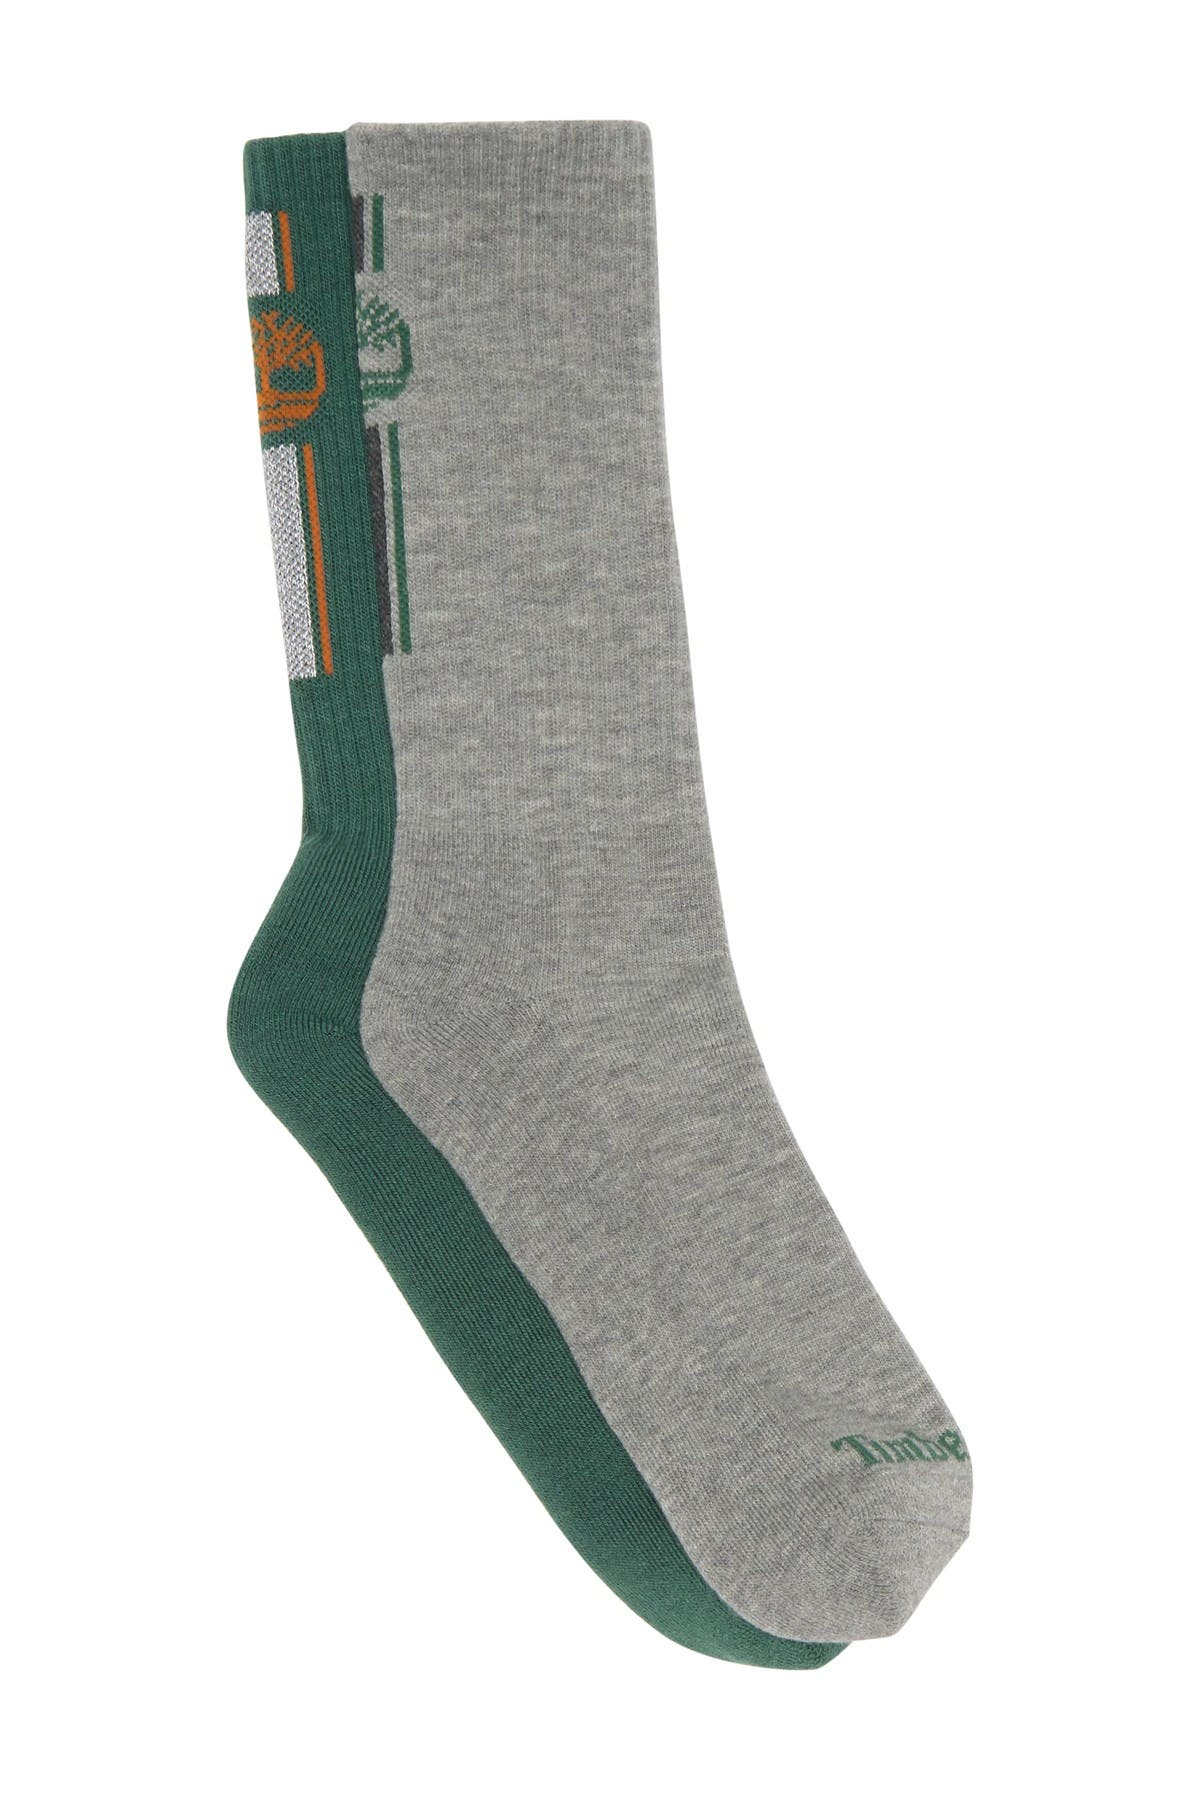 Image of Timberland Striped Ribbed Crew Socks - Pack of 2